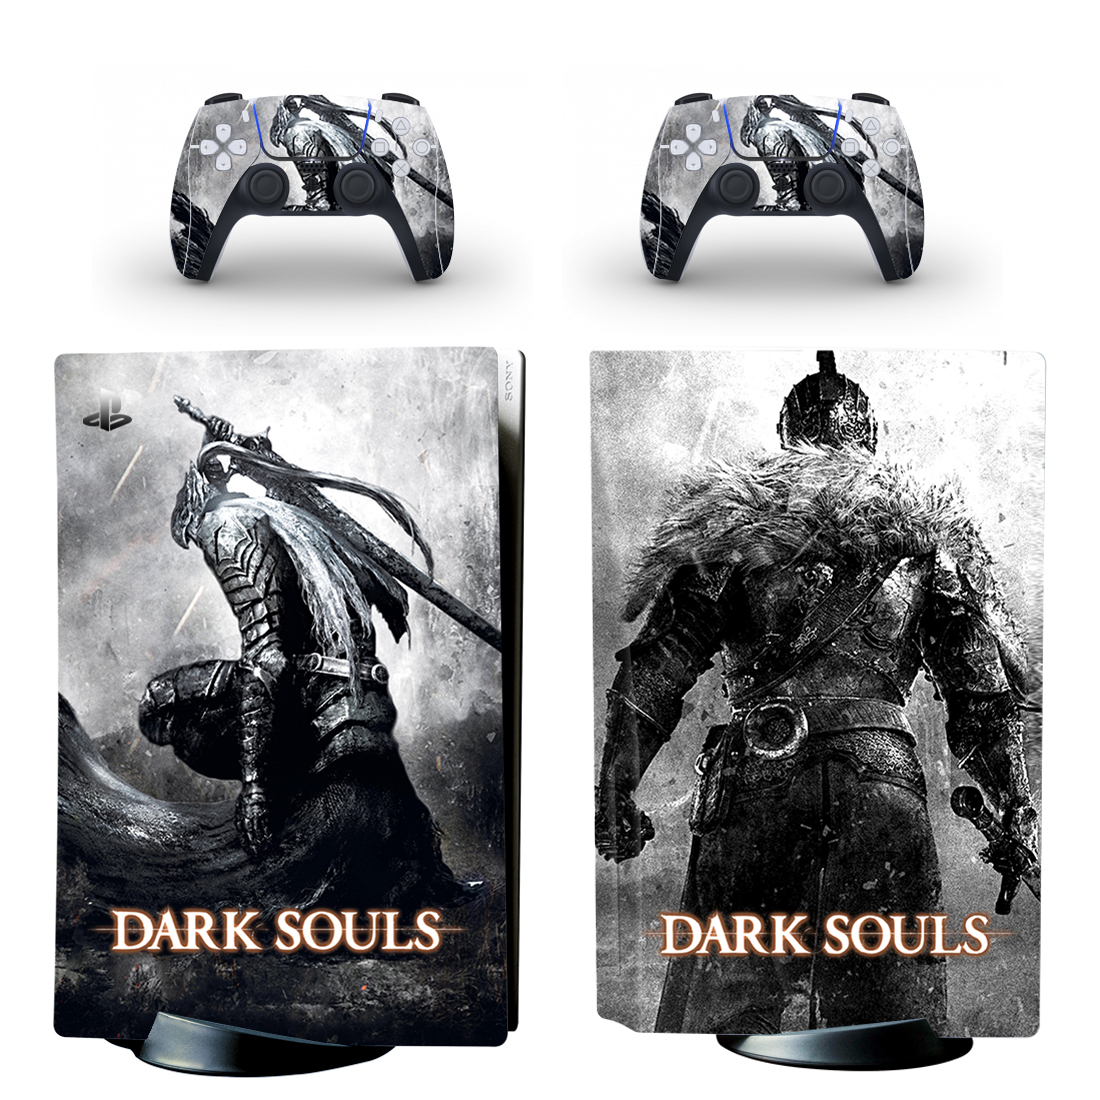 Dark Souls PS5 Standard Disc Edition Skin Sticker Decal Cover for PlayStation 5 Console & Controllers PS5 Skin Sticker Vinyl 1